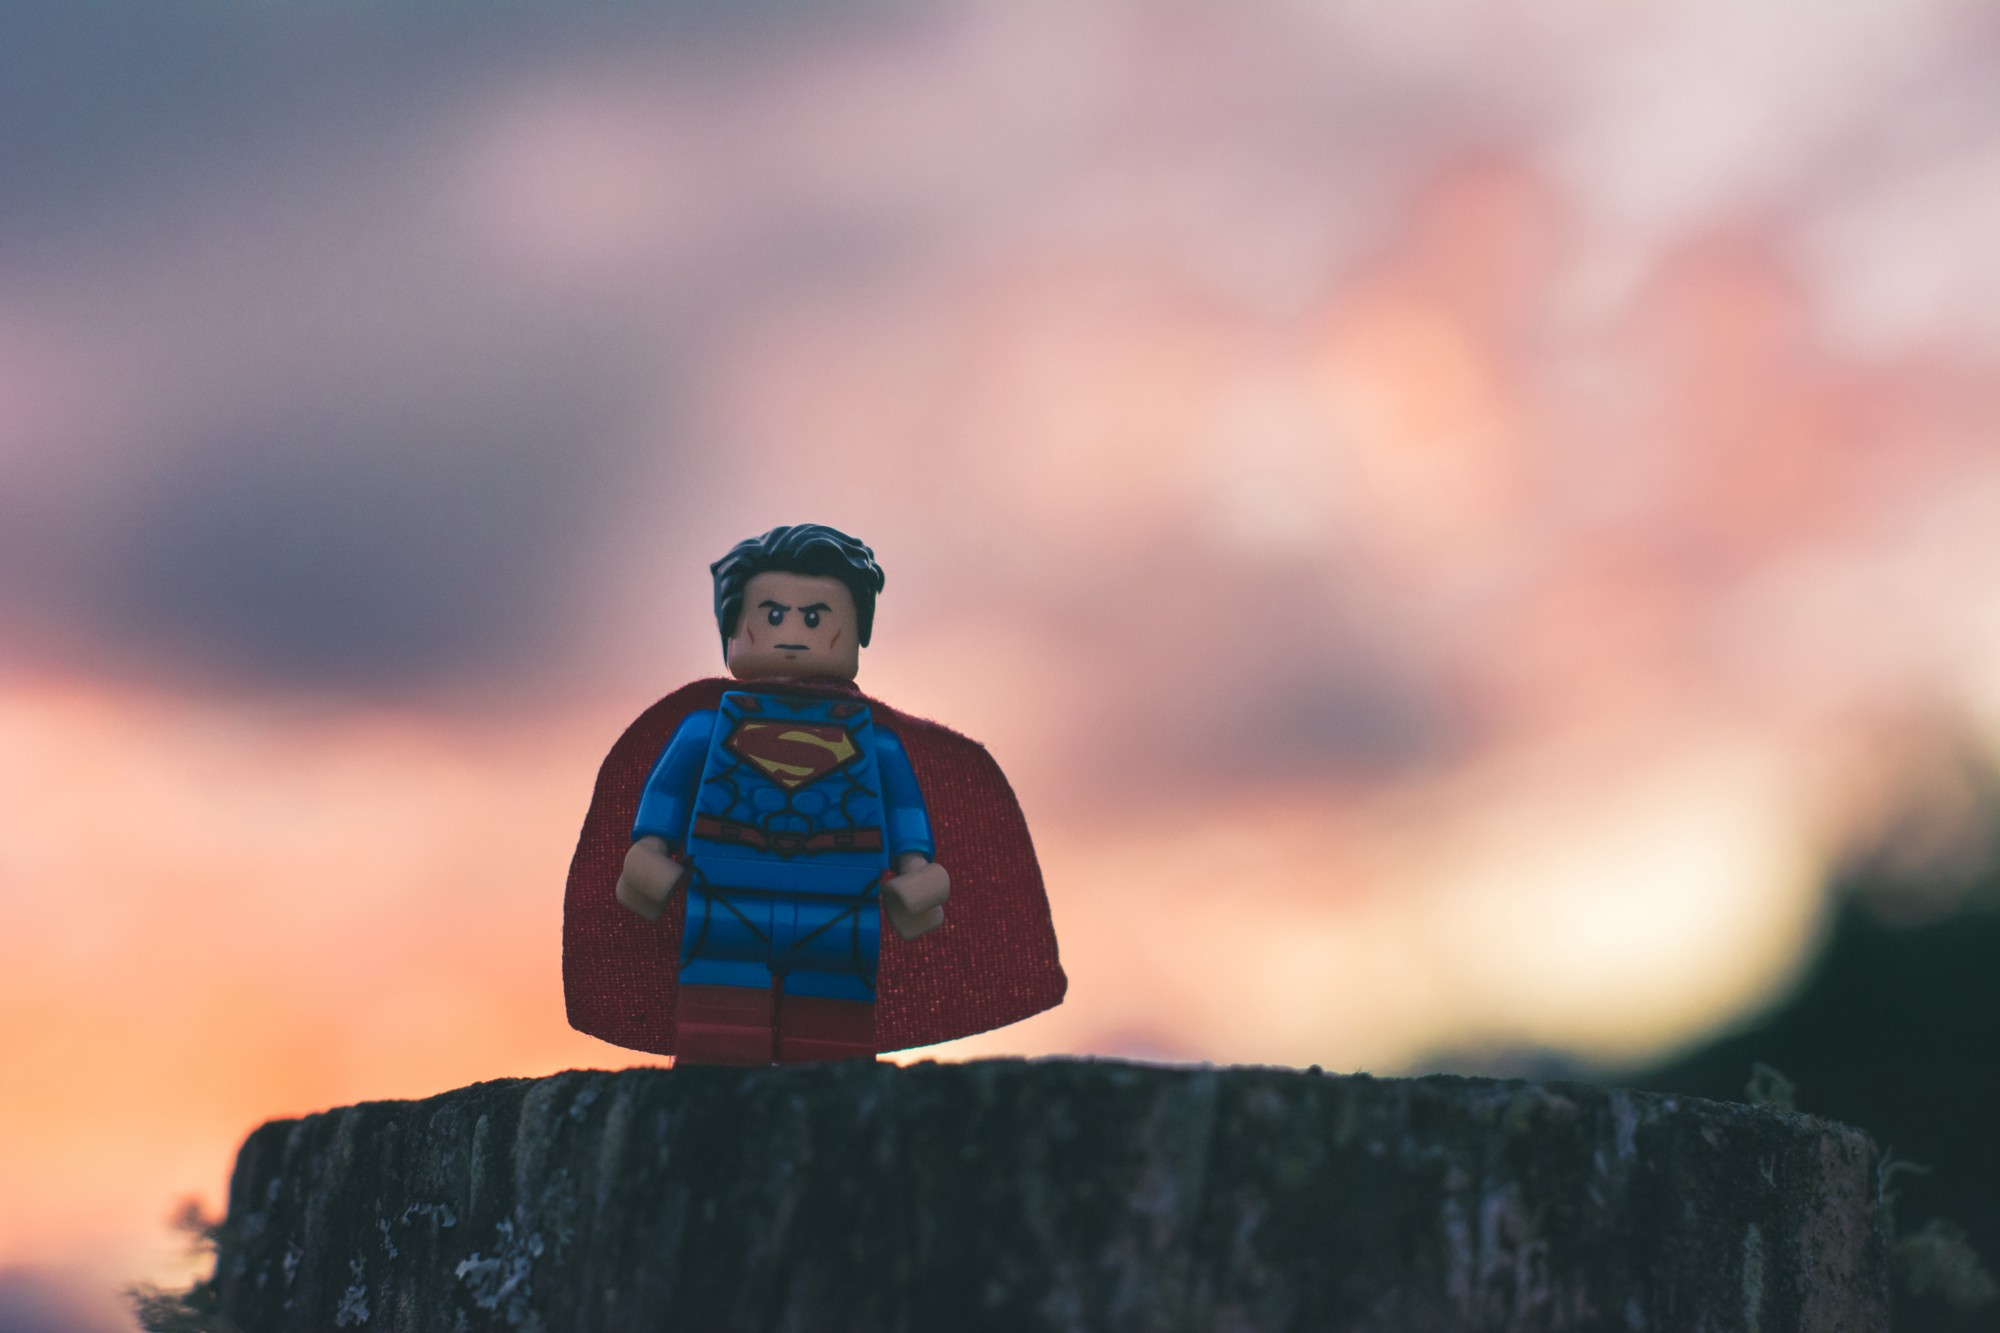 A LEGO Superman figurine looking badass straight at us, with sunset colors in the background and him standing on a tree stump watching.